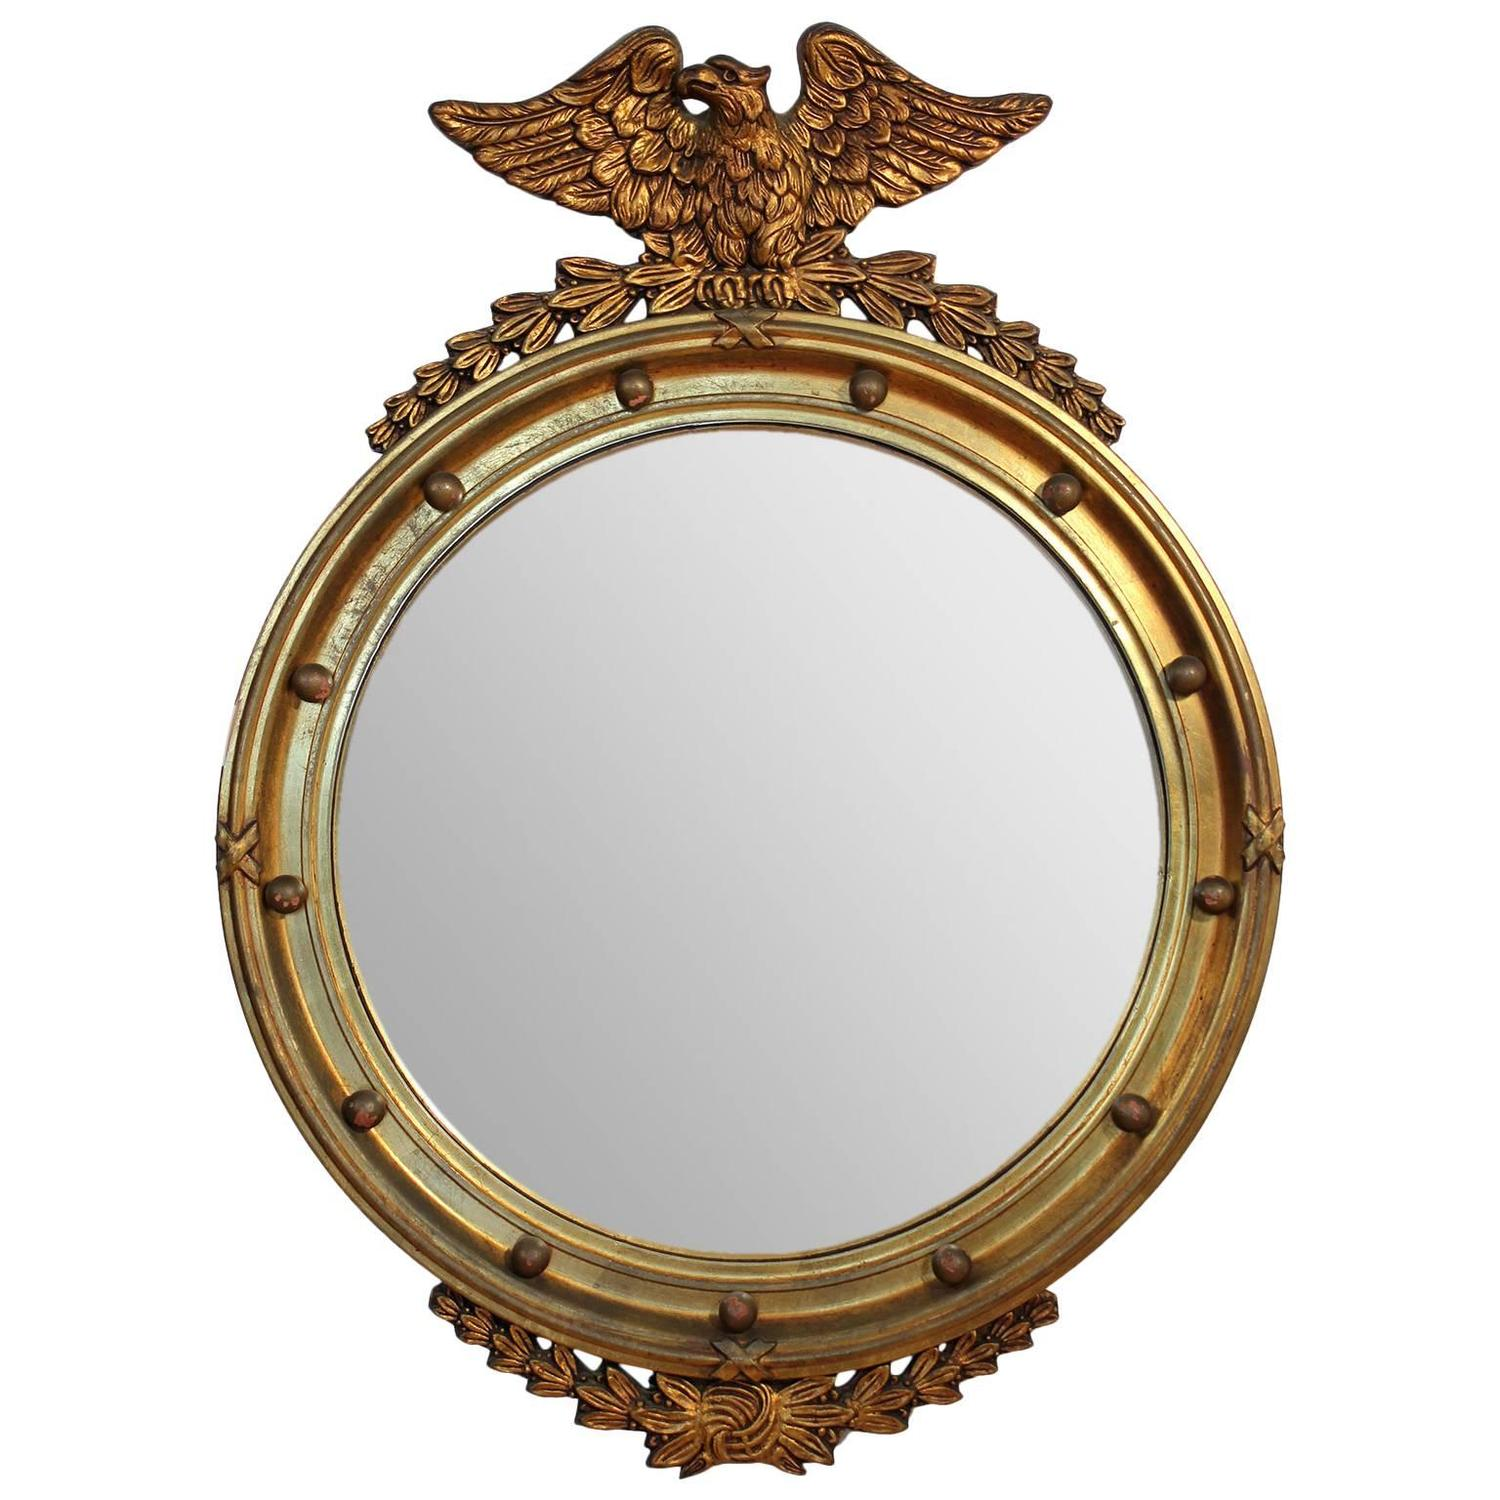 Sun Mirror in Antique Gold Finish and Convex Mirror For Sale at 1stdibs